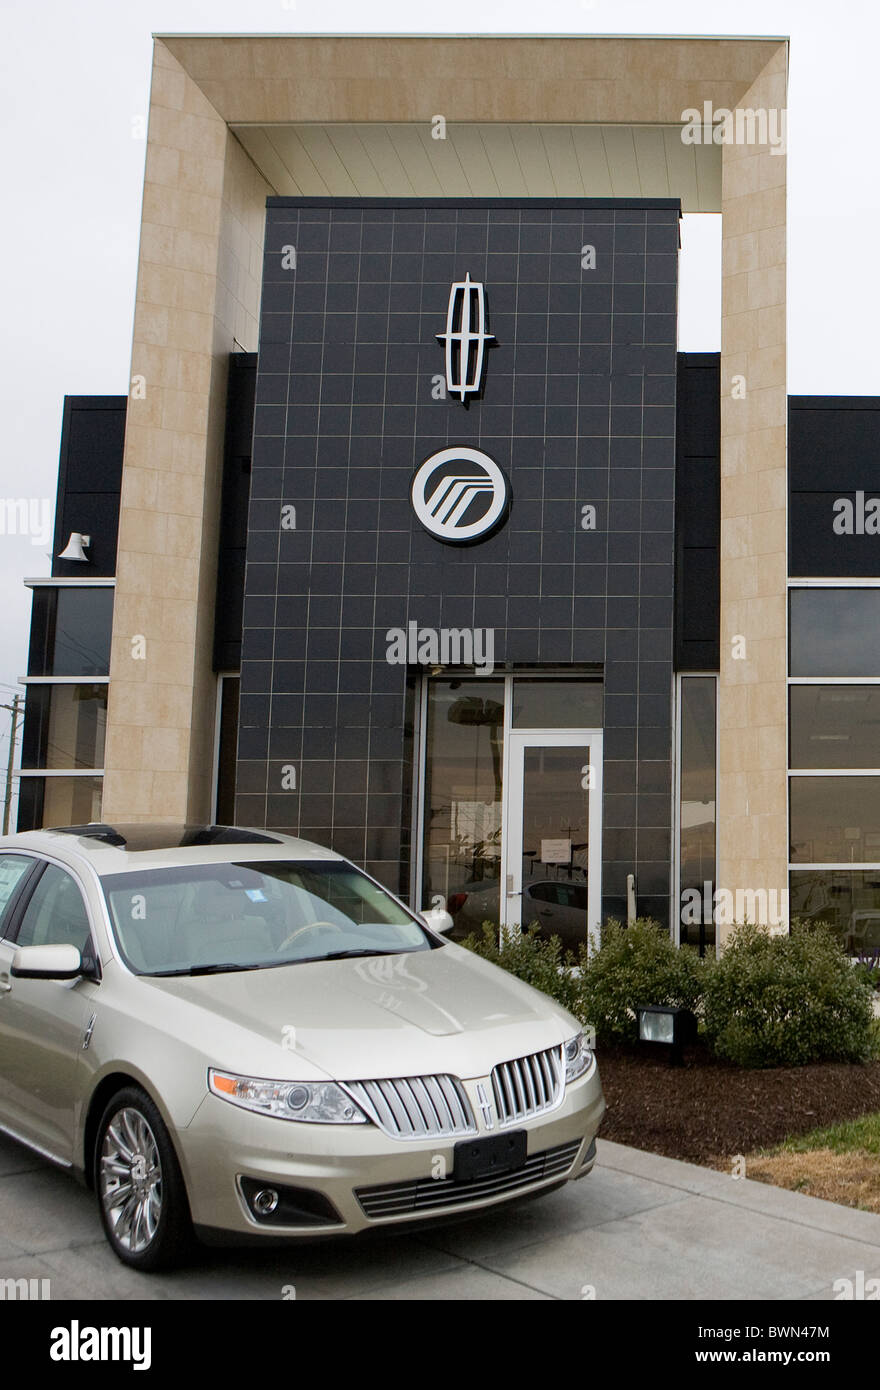 A Ford Lincoln And Mercury Car Dealership Stock Photo 33041112 Alamy